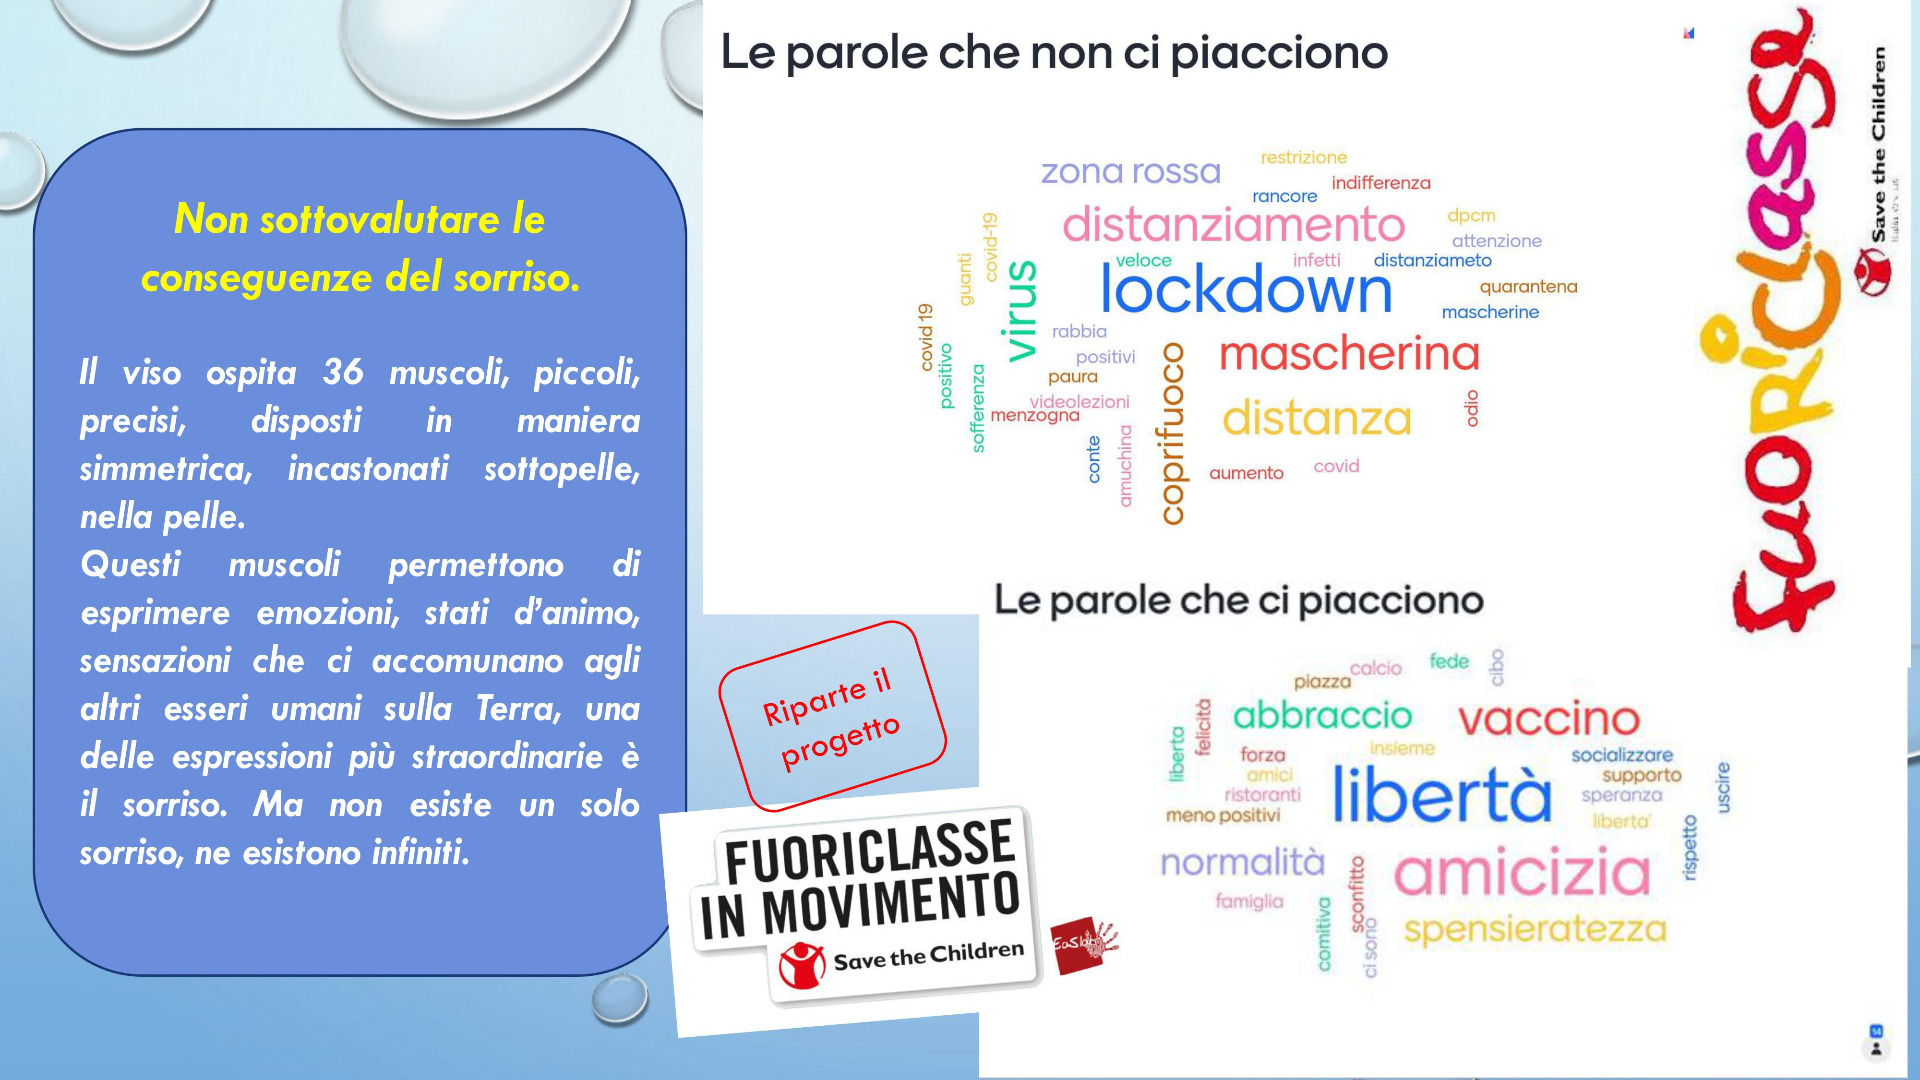 Riparte Fuoriclasse in movimento in collaborazione con Save the Children   [clicca qui]